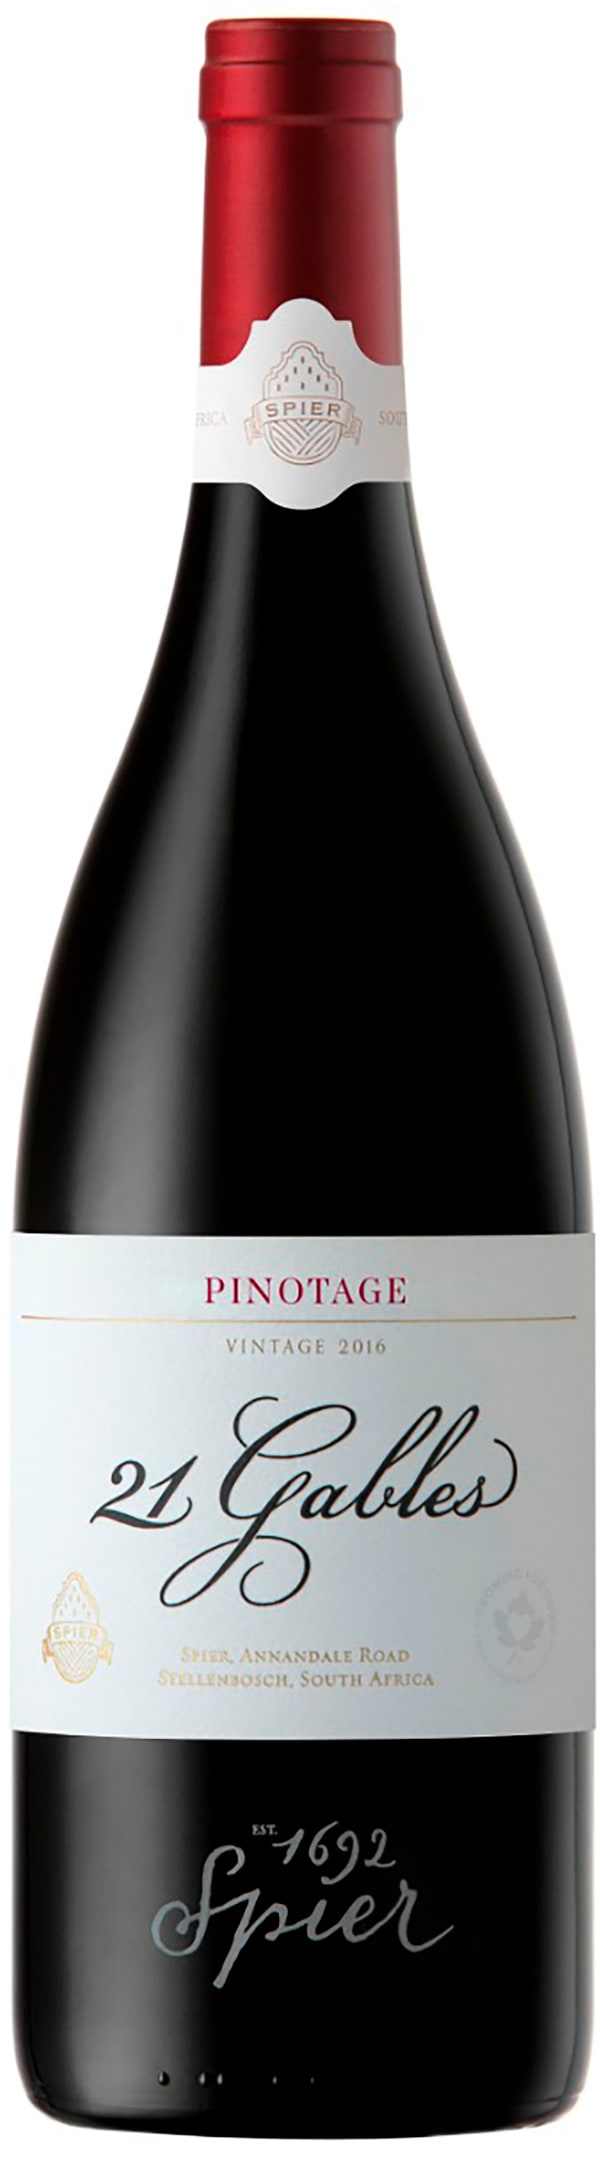 Spier 21 Gables Pinotage 2015